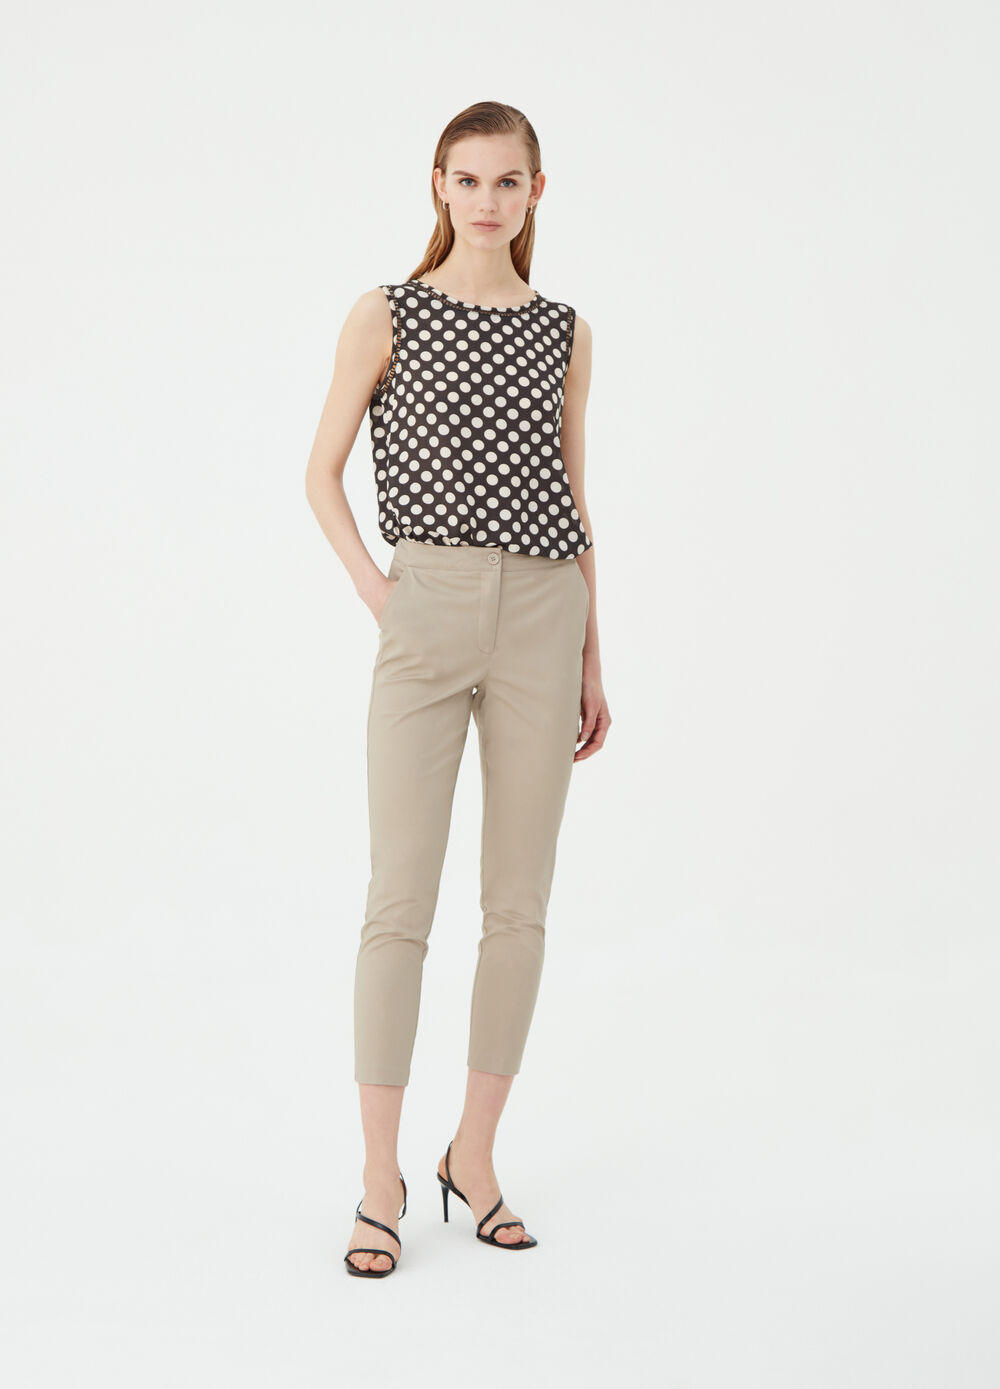 Pantaloni crop chino a sigaretta stretch